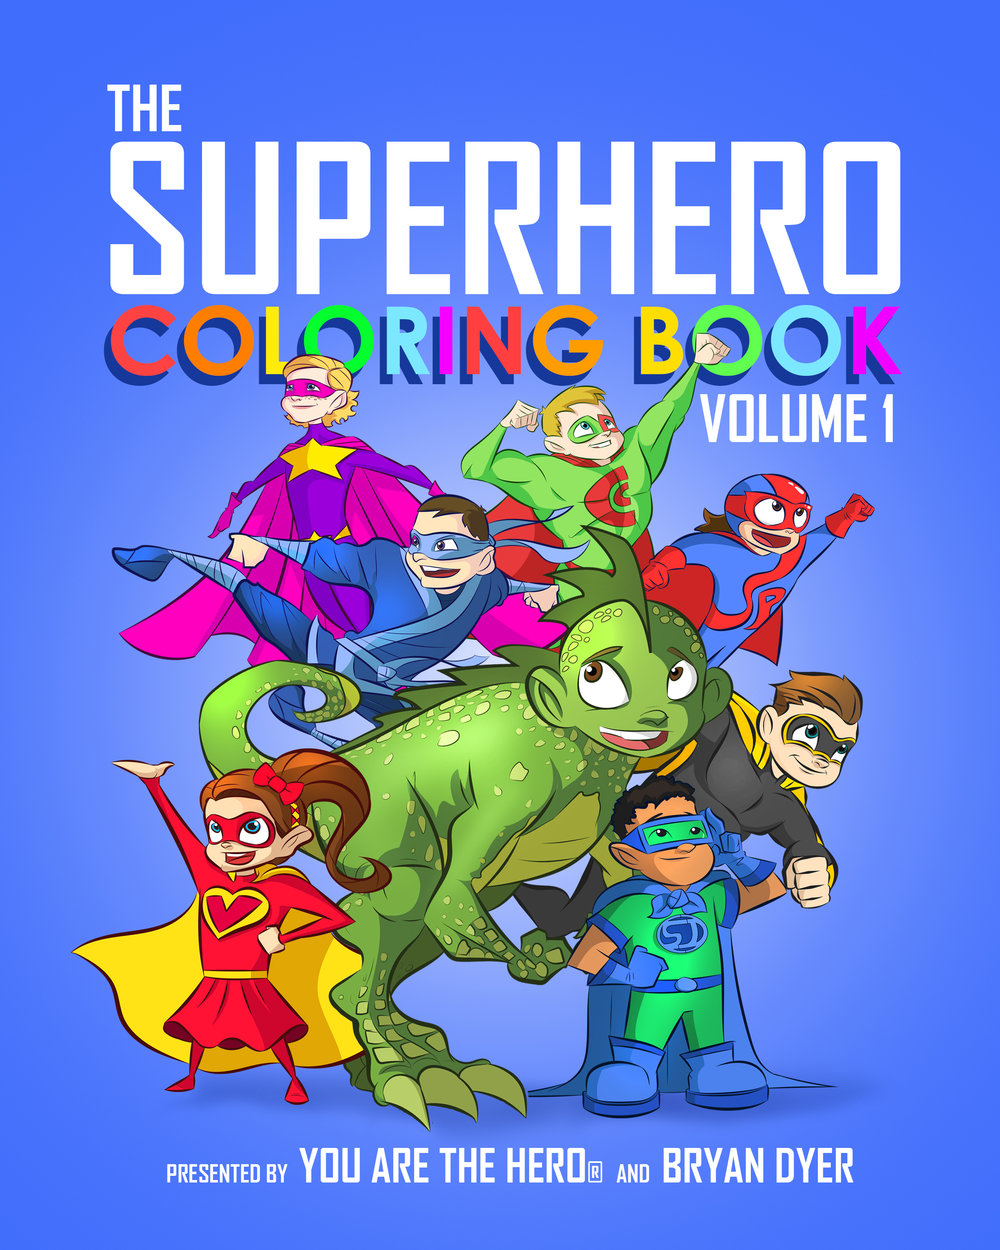 The Superhero Coloring Book: Volume 1 — You Are the Hero